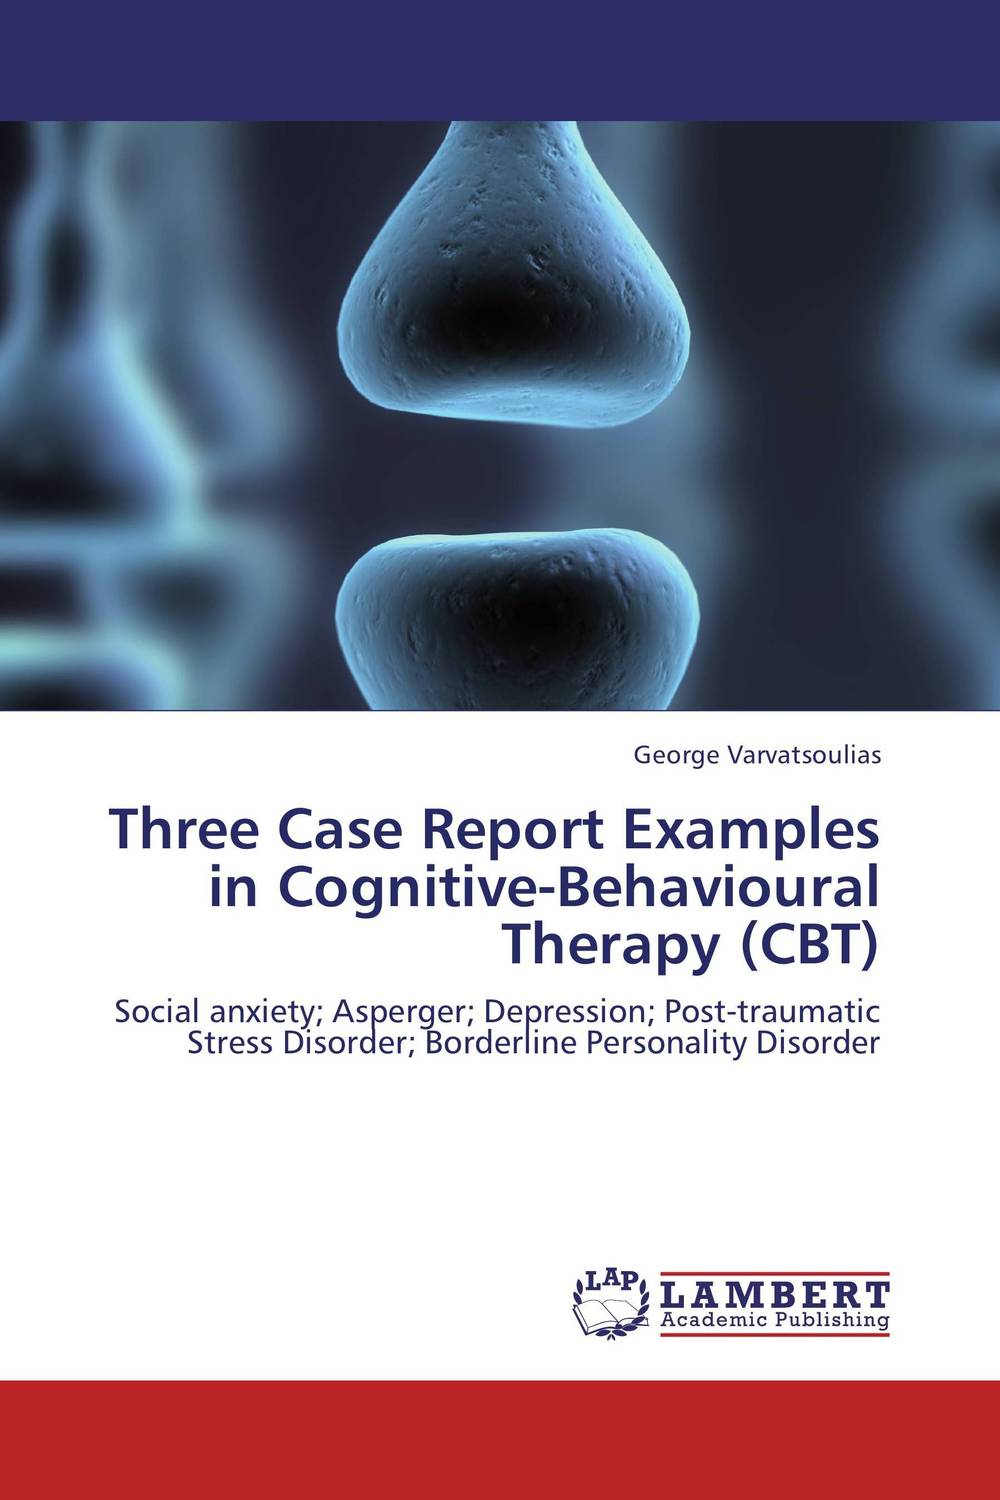 Three Case Report Examples in Cognitive-Behavioural Therapy (CBT) rob willson cognitive behavioural therapy workbook for dummies